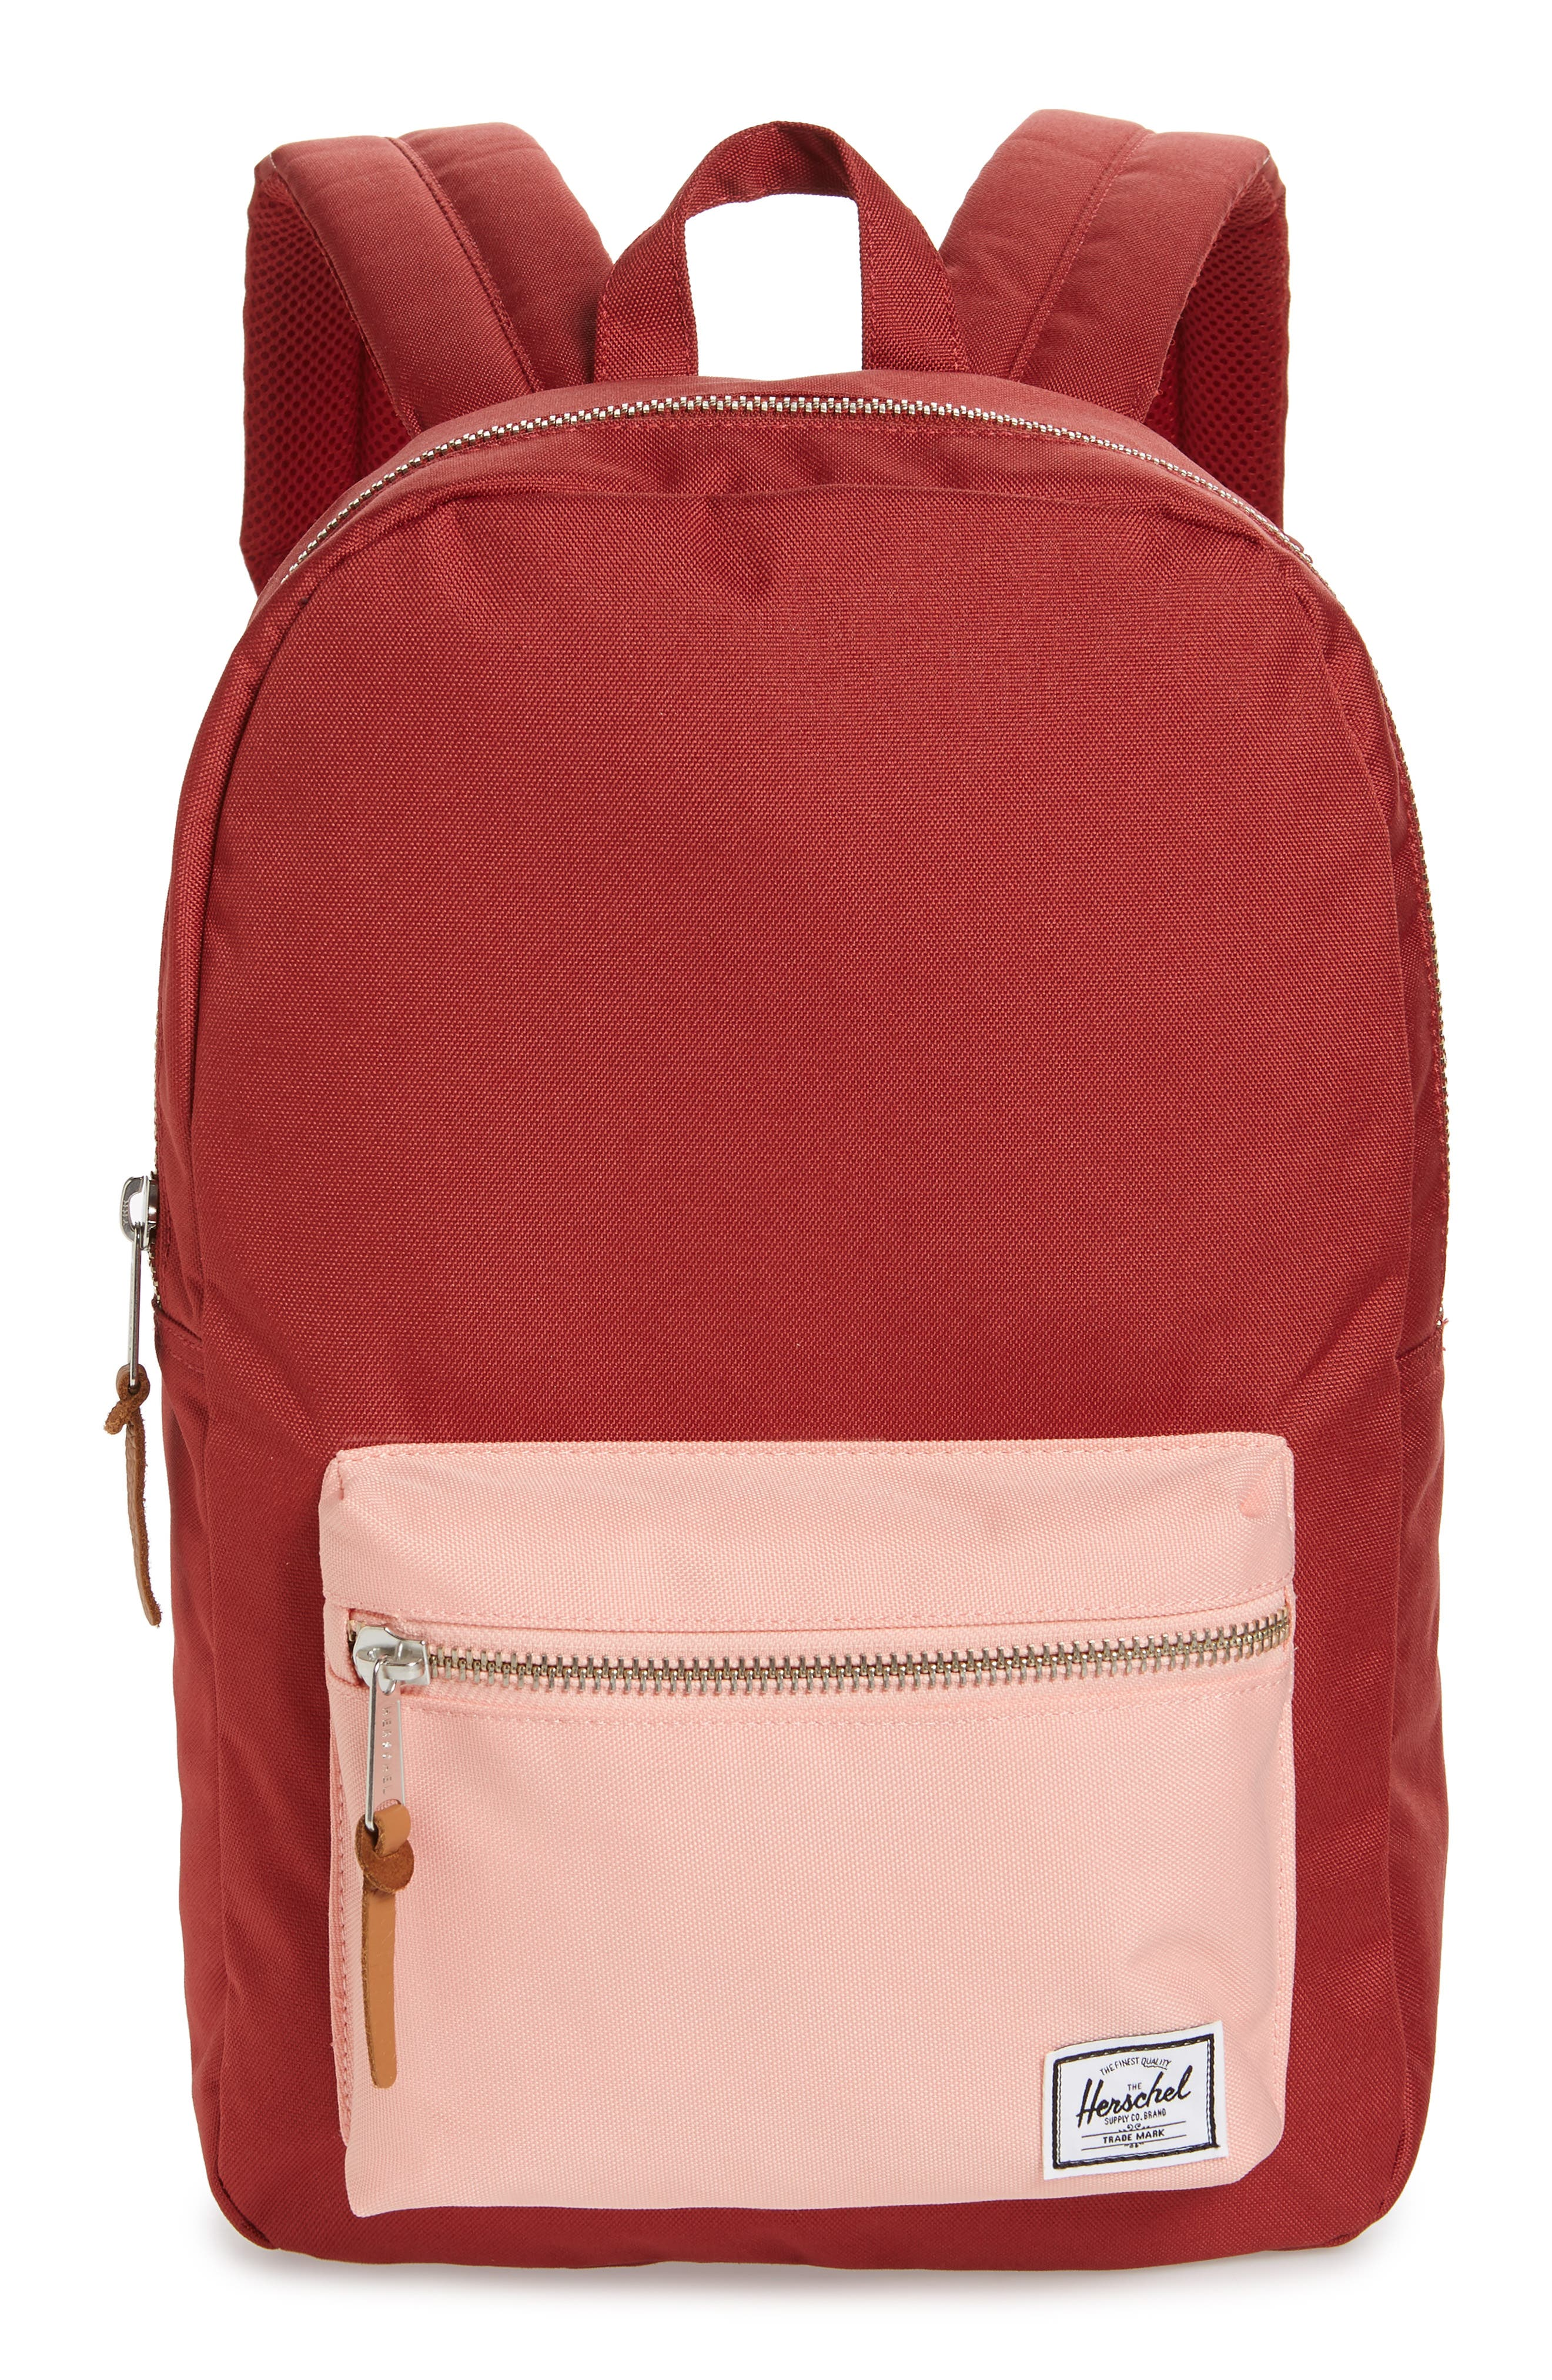 'Settlement Mid Volume' Backpack,                             Main thumbnail 1, color,                             Brick Red/ Peach